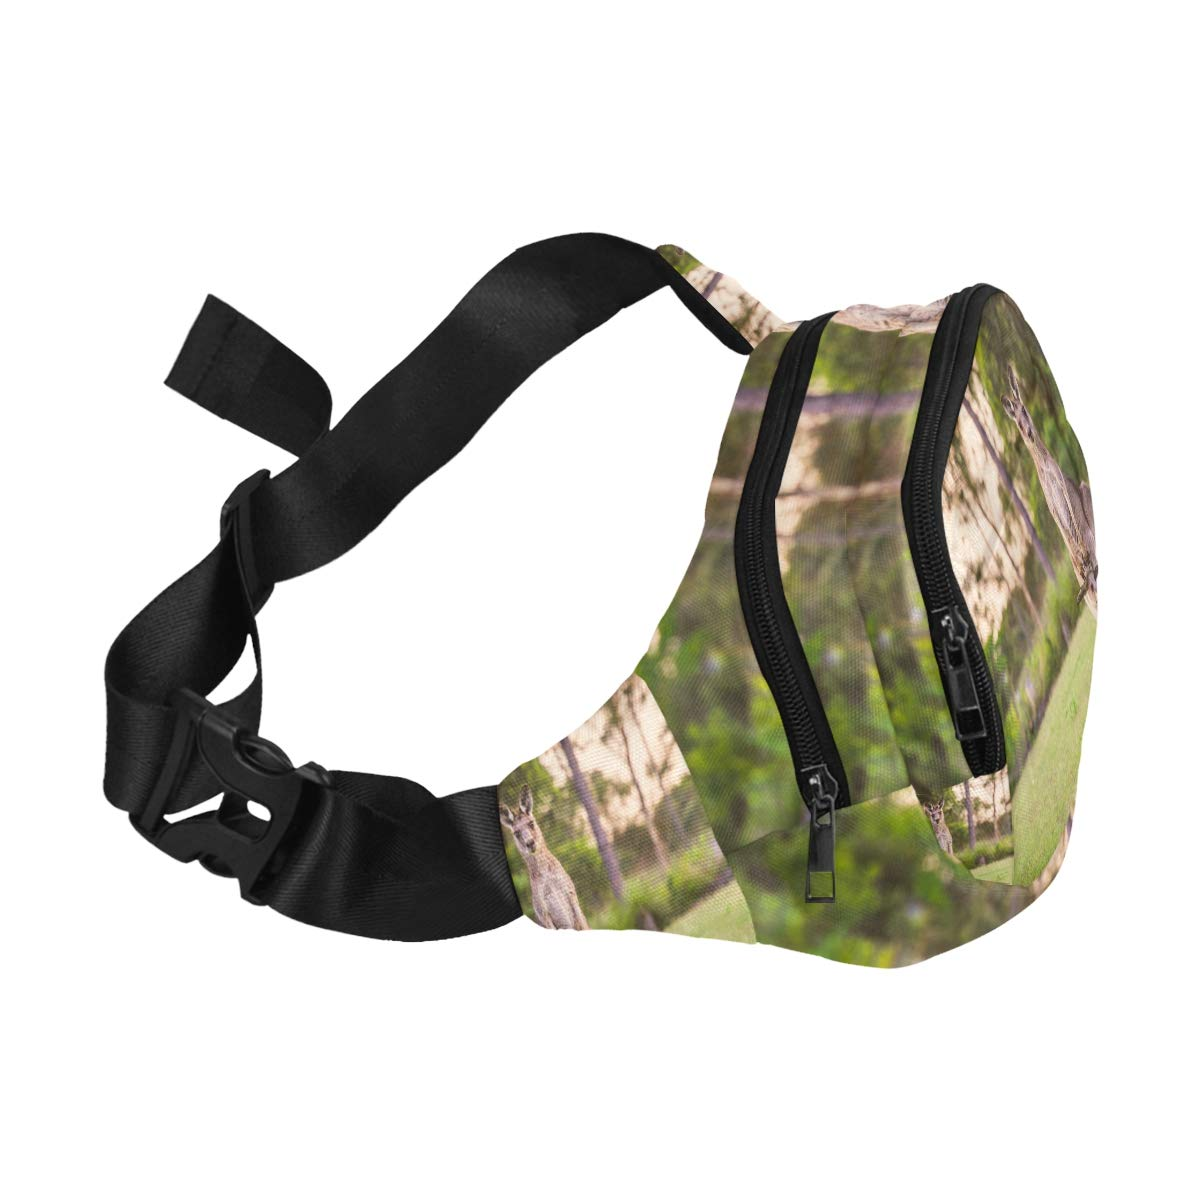 A Kangaroo Stand Up In Grasslands Fenny Packs Waist Bags Adjustable Belt Waterproof Nylon Travel Running Sport Vacation Party For Men Women Boys Girls Kids